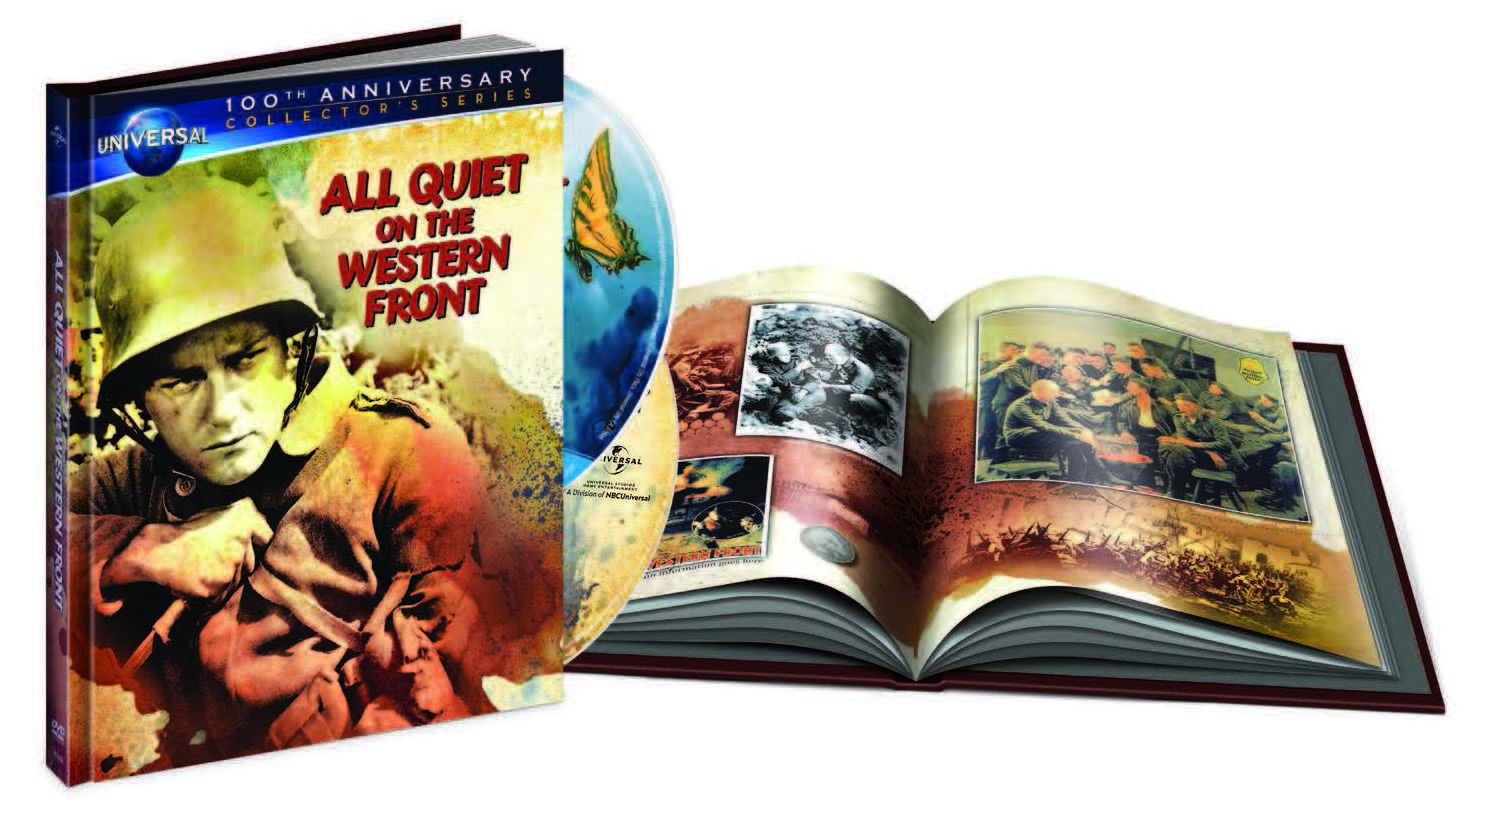 http://4.bp.blogspot.com/-letwyH4euVg/T1XYVqsefAI/AAAAAAAADB4/WOw-80vgW68/s1600/all-quiet-on-the-western-front-blu-ray-cover-art.jpg